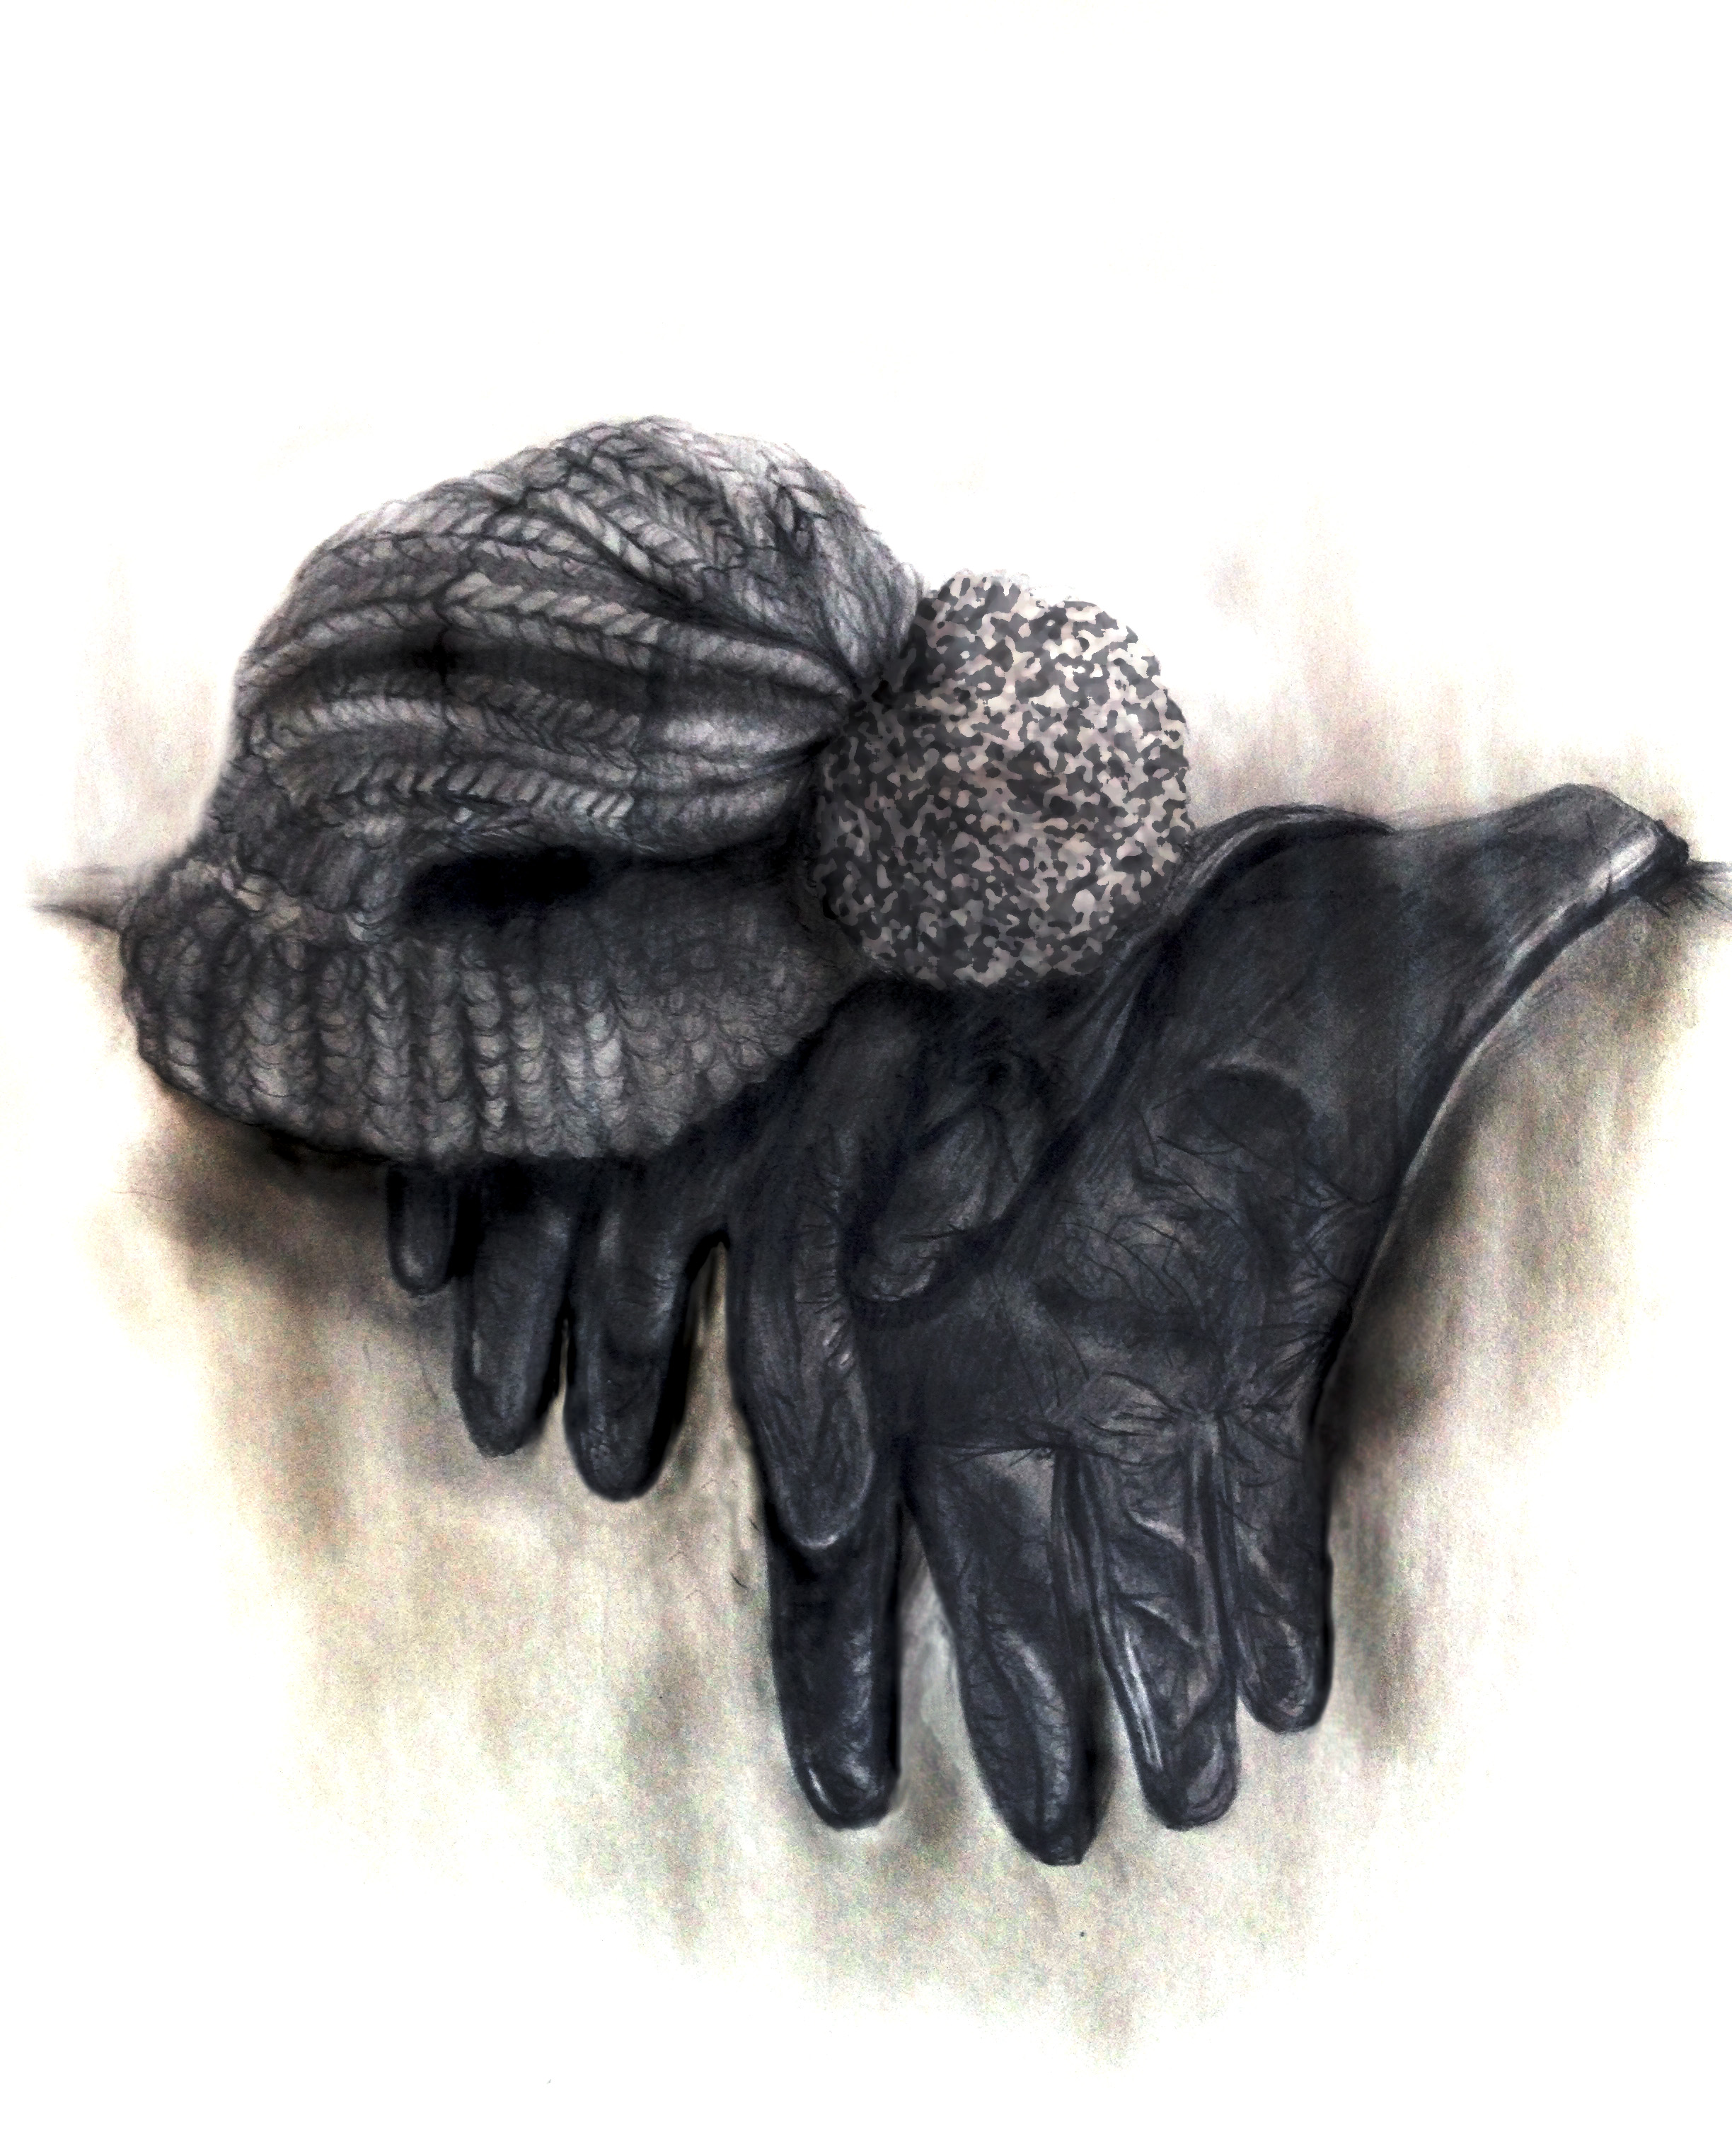 gloves1 copy.jpg